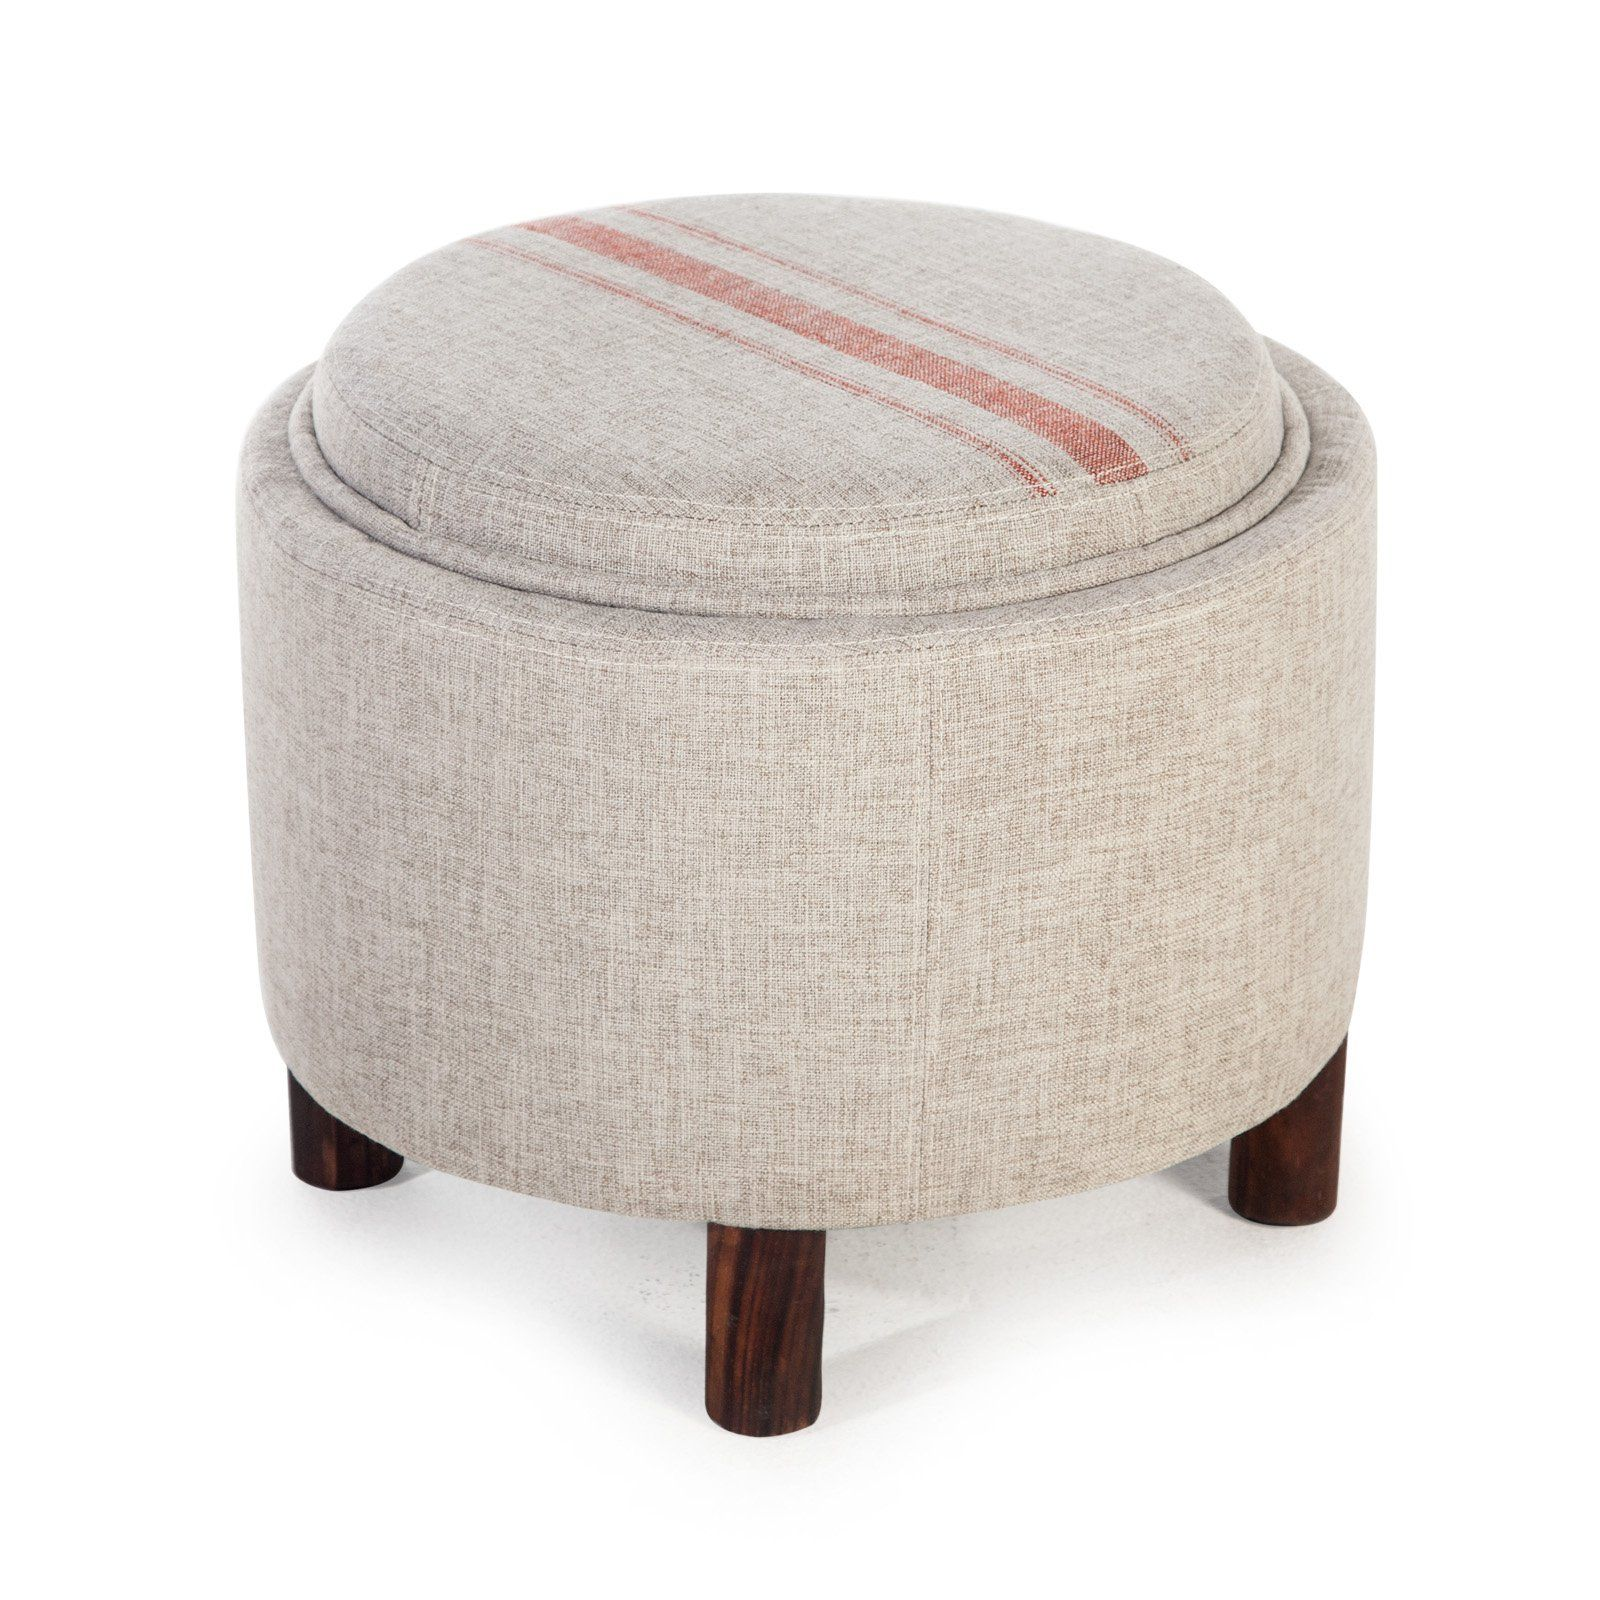 Admirable Belham Living Ingram Round Storage Ottoman With Cocktail Pdpeps Interior Chair Design Pdpepsorg